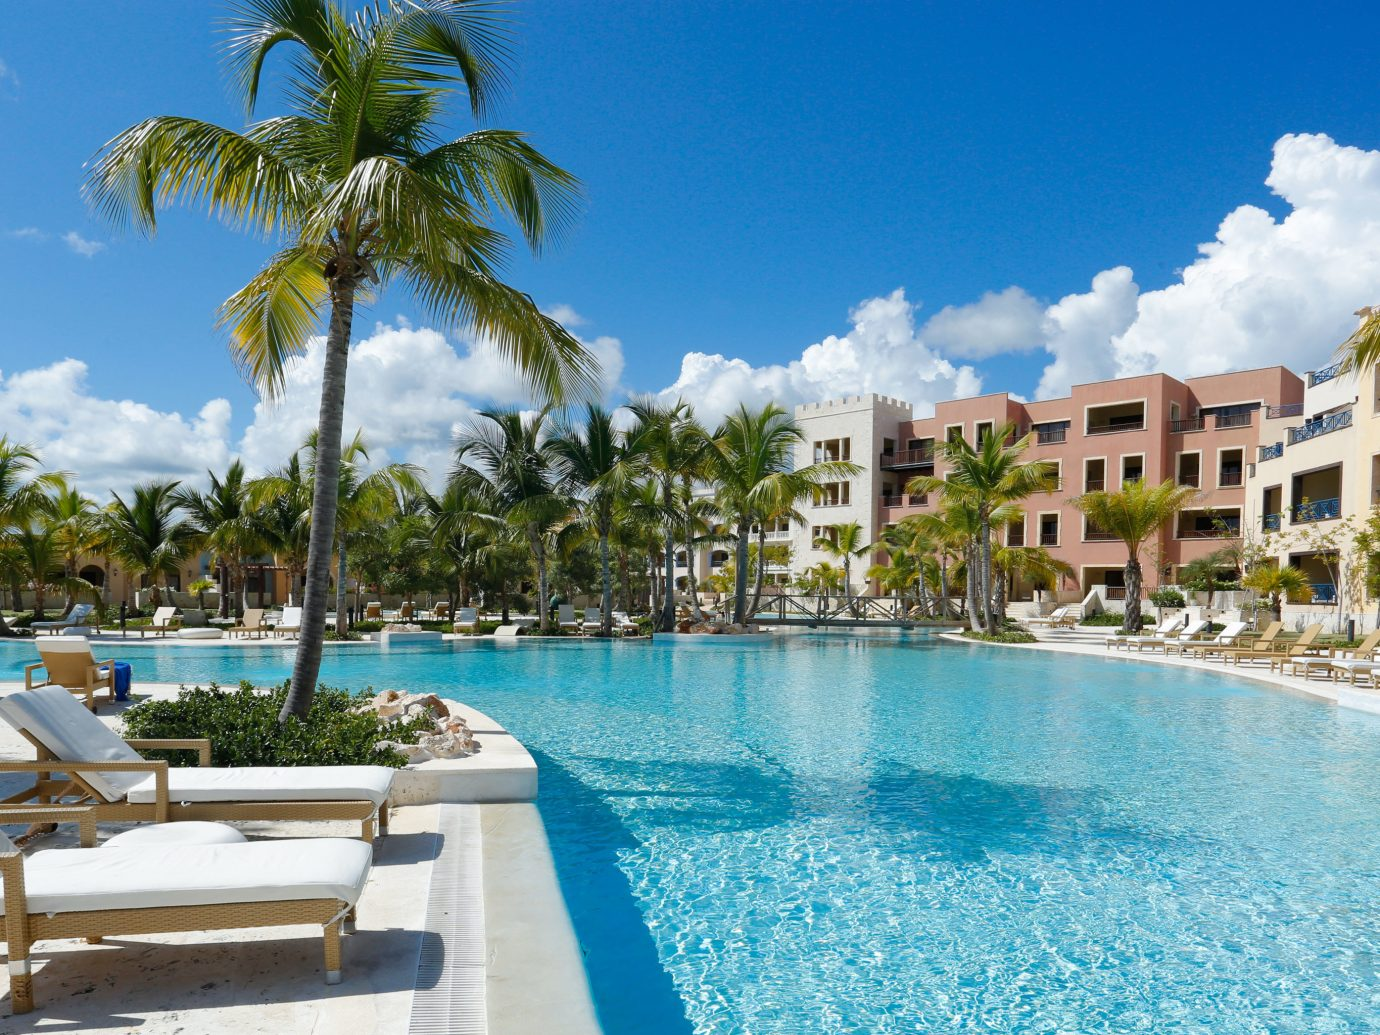 All-inclusive Hotels Kids Club Luxury Pool Resort sky tree outdoor water palm swimming pool property leisure caribbean condominium vacation estate real estate marina resort town Villa swimming lawn bay lined sunny shade shore day